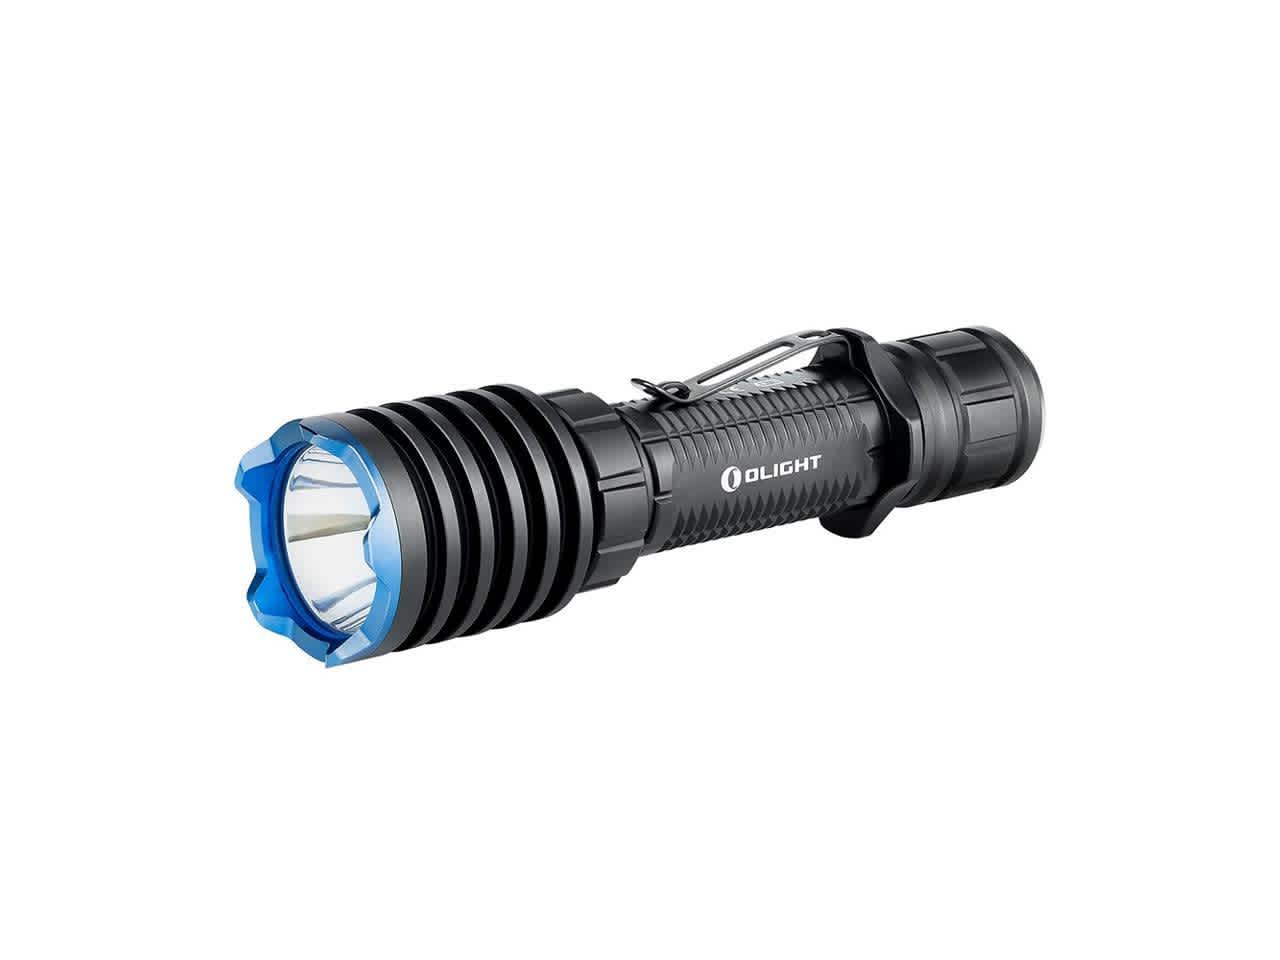 Olight Warrior X Pro 2,100-Lumen LED Tactical Flashlight